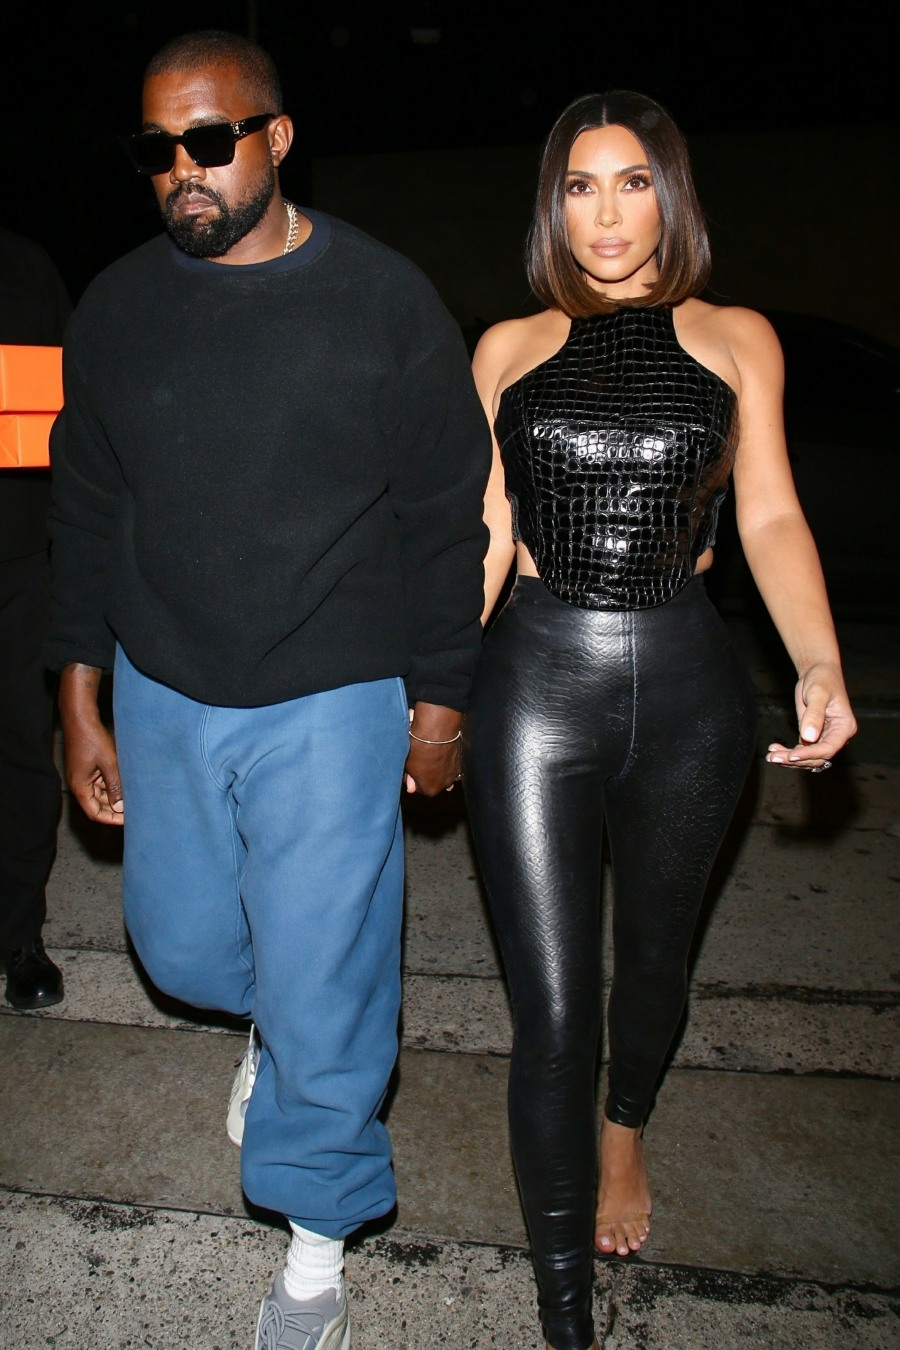 Kanye West and wife Kim Kardashian arrive for a dinner party at Craig's